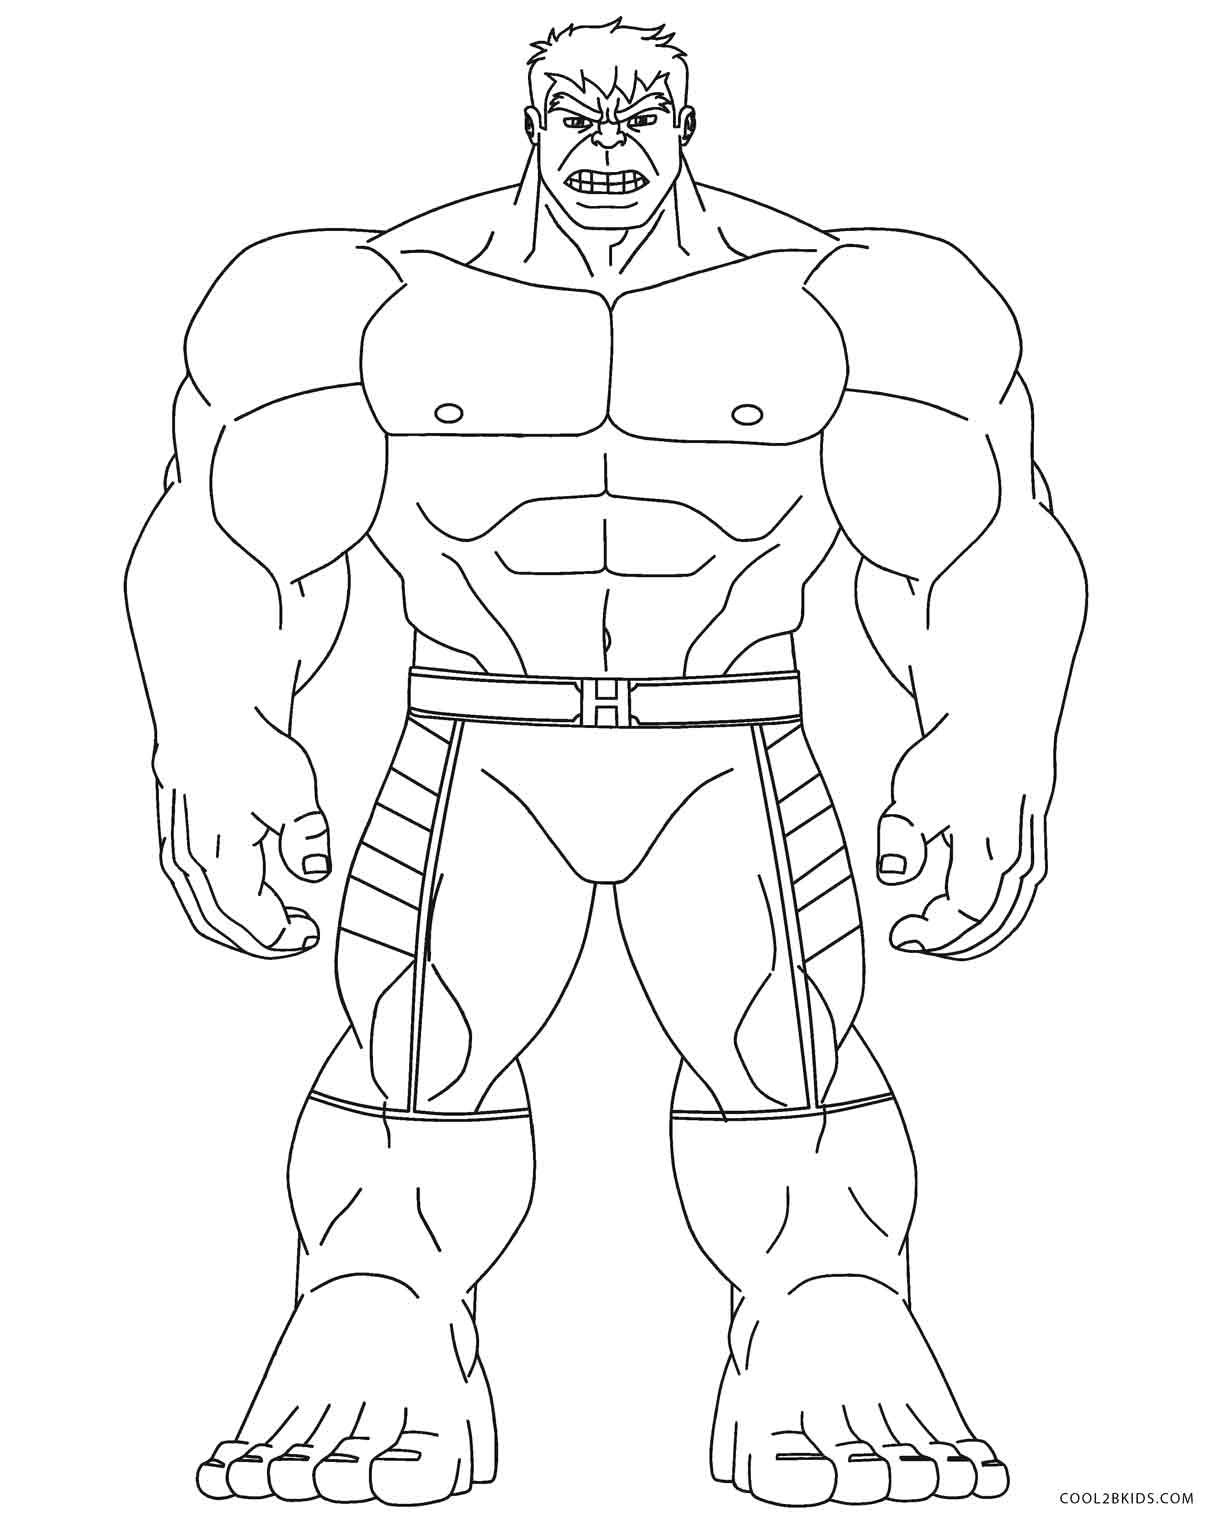 hulk pictures to color hulk drawing pages at getdrawings free download to pictures color hulk